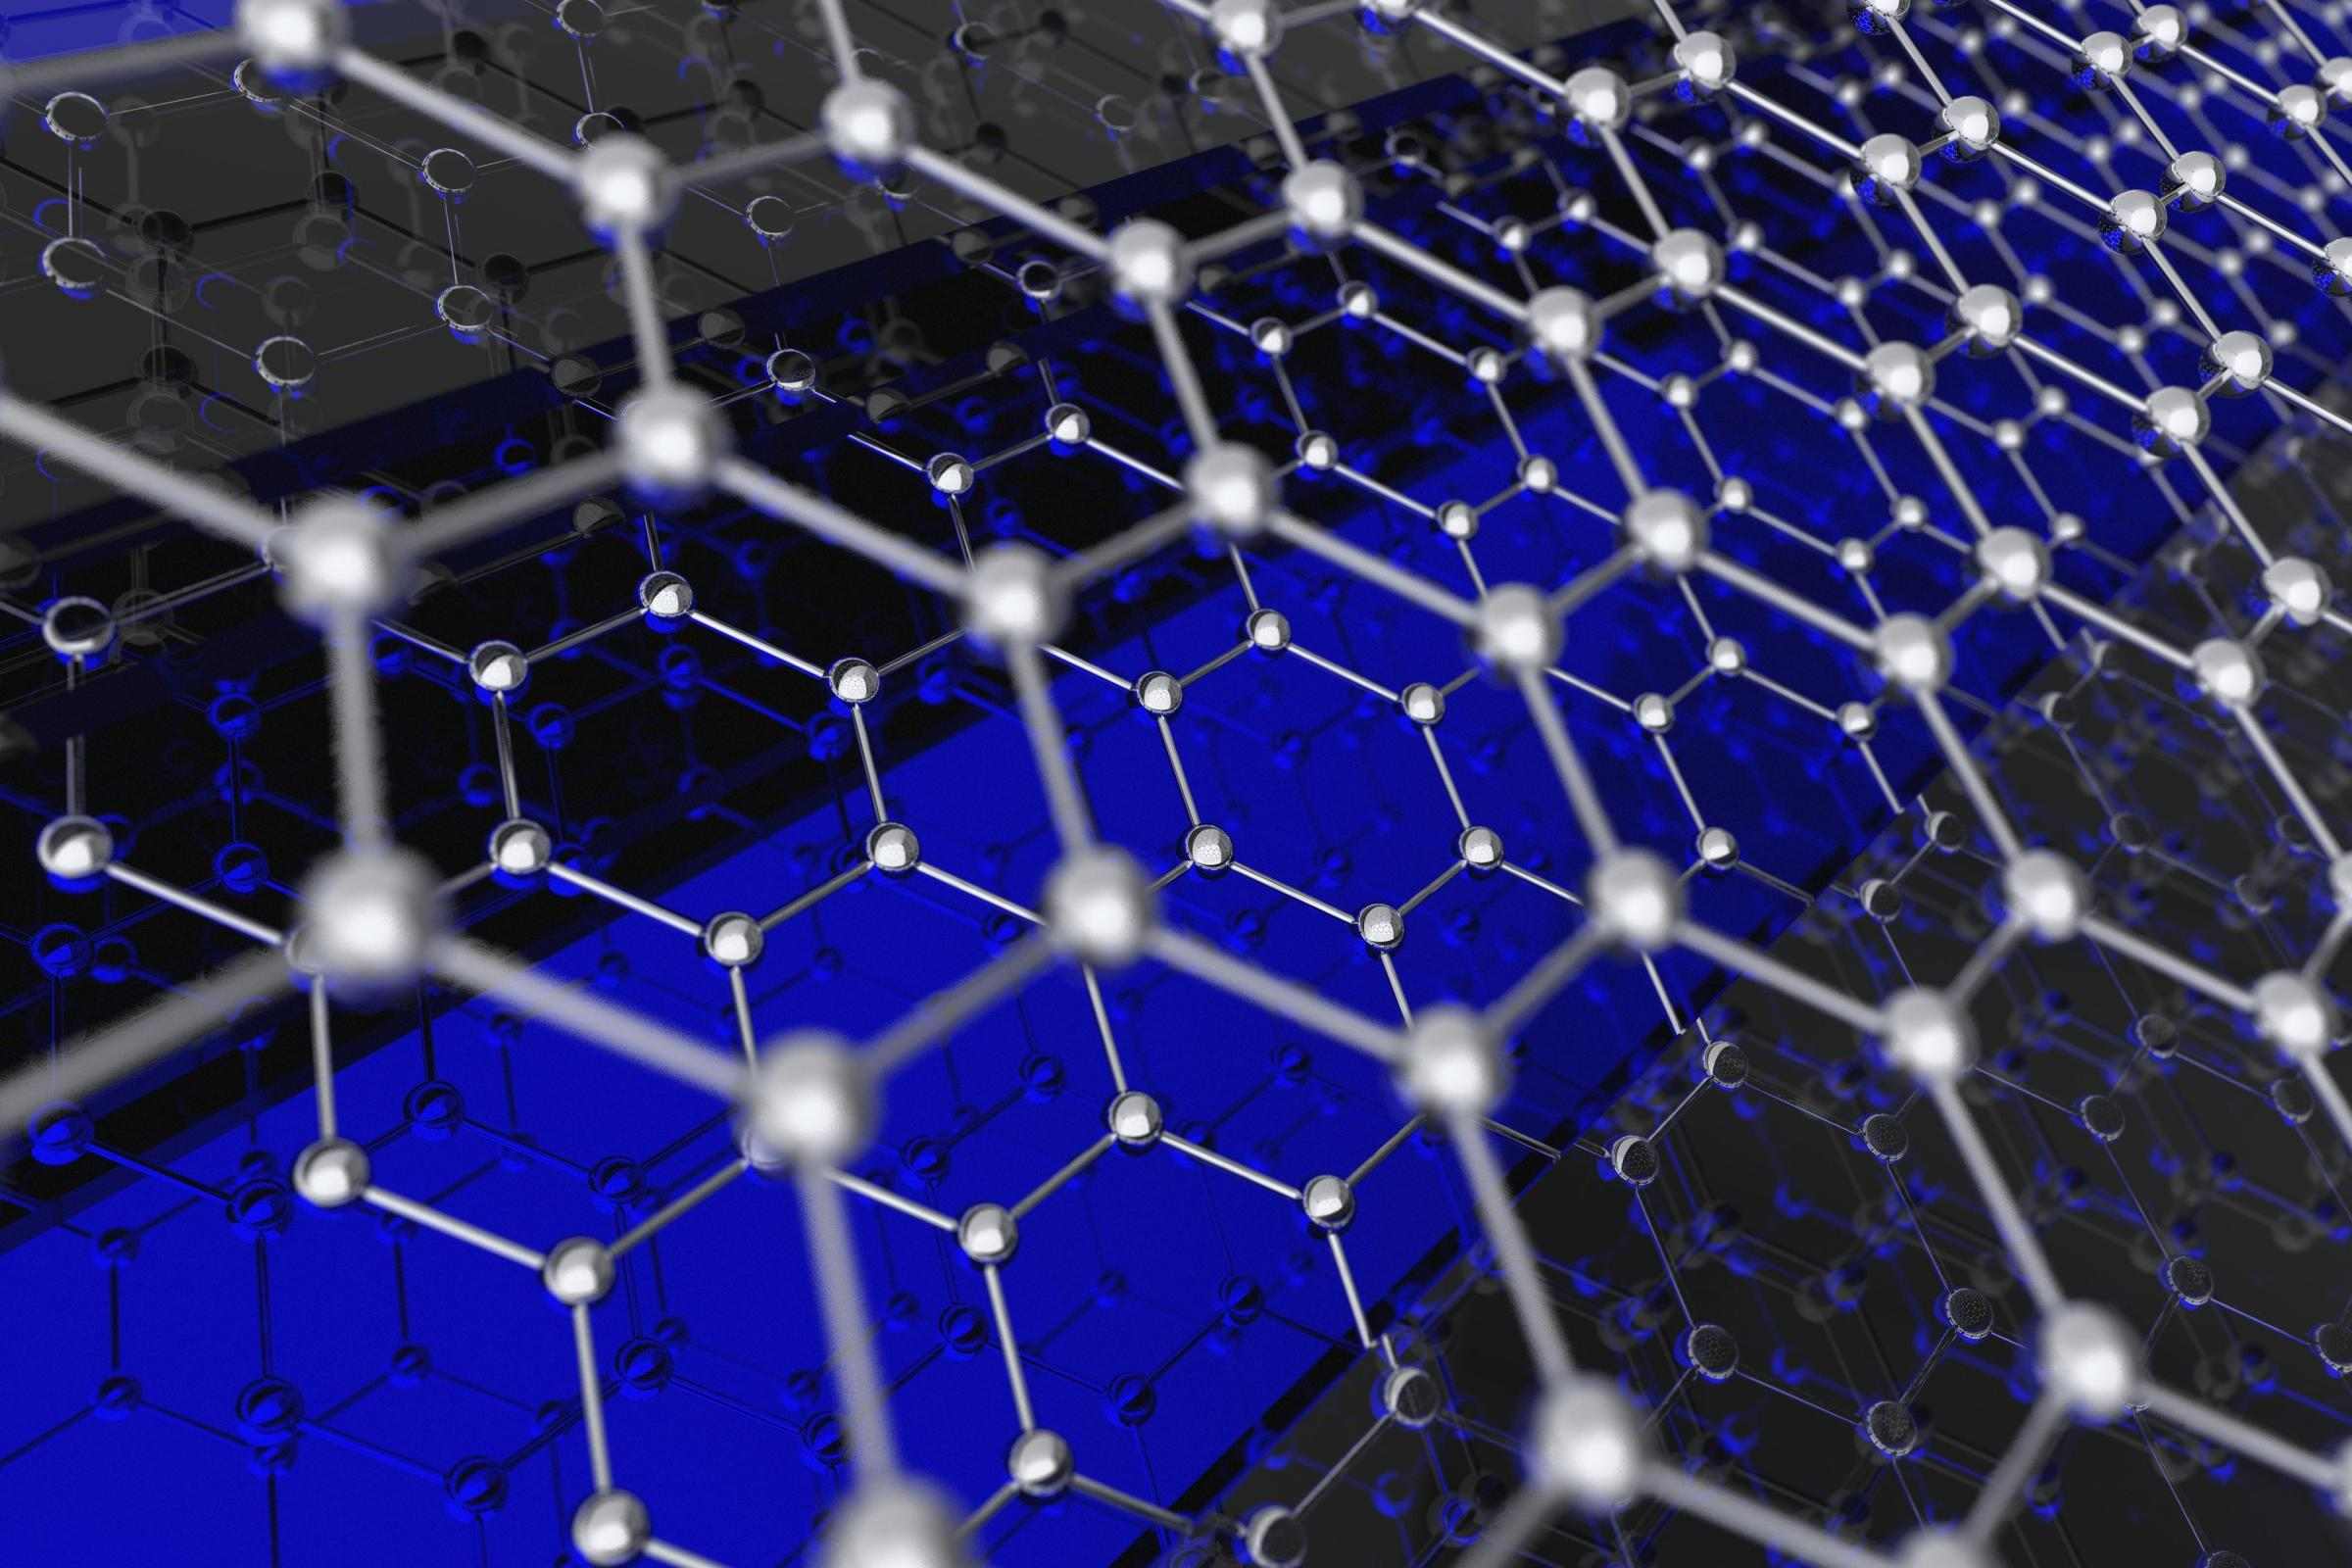 Breakthrough! Glasgow scientists discover a cheap way to produce the wonder material graphene